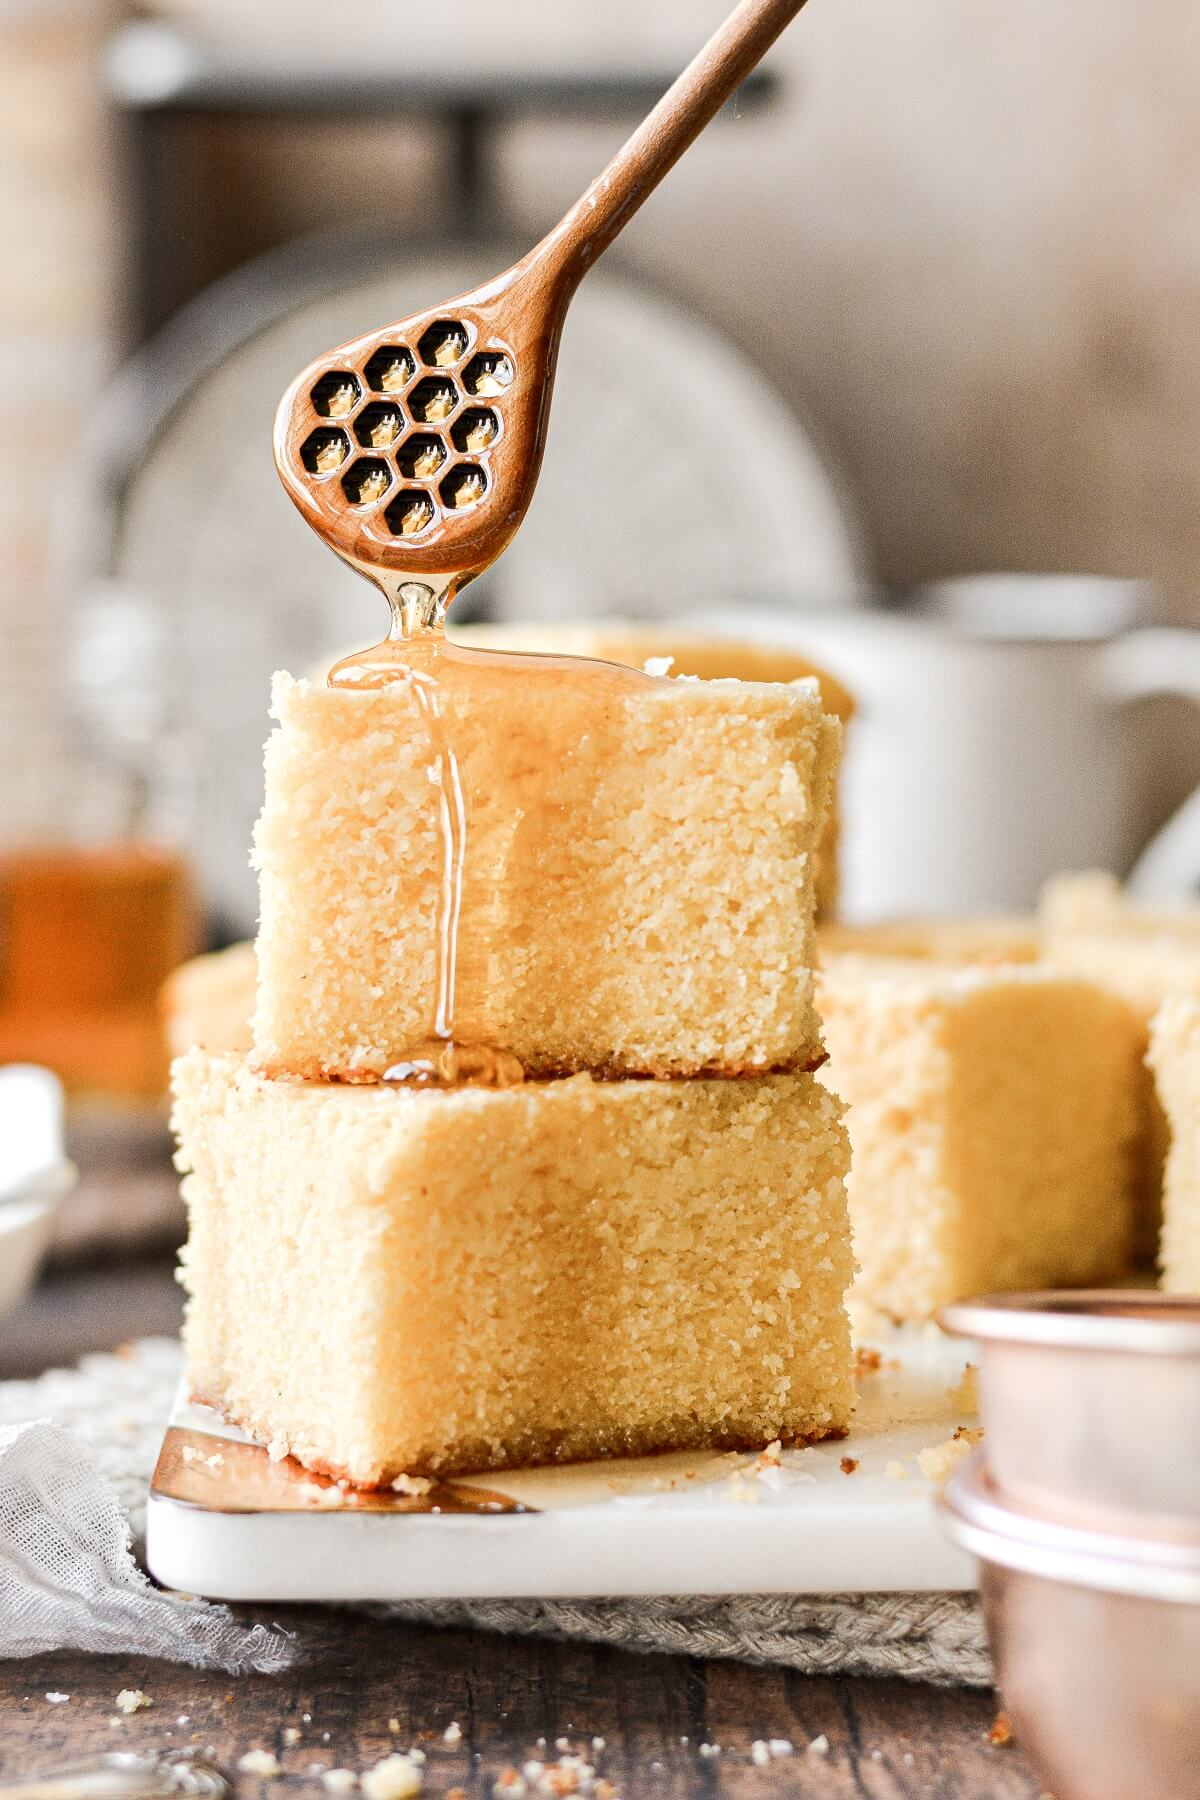 Honey drizzling over the top of cornbread.